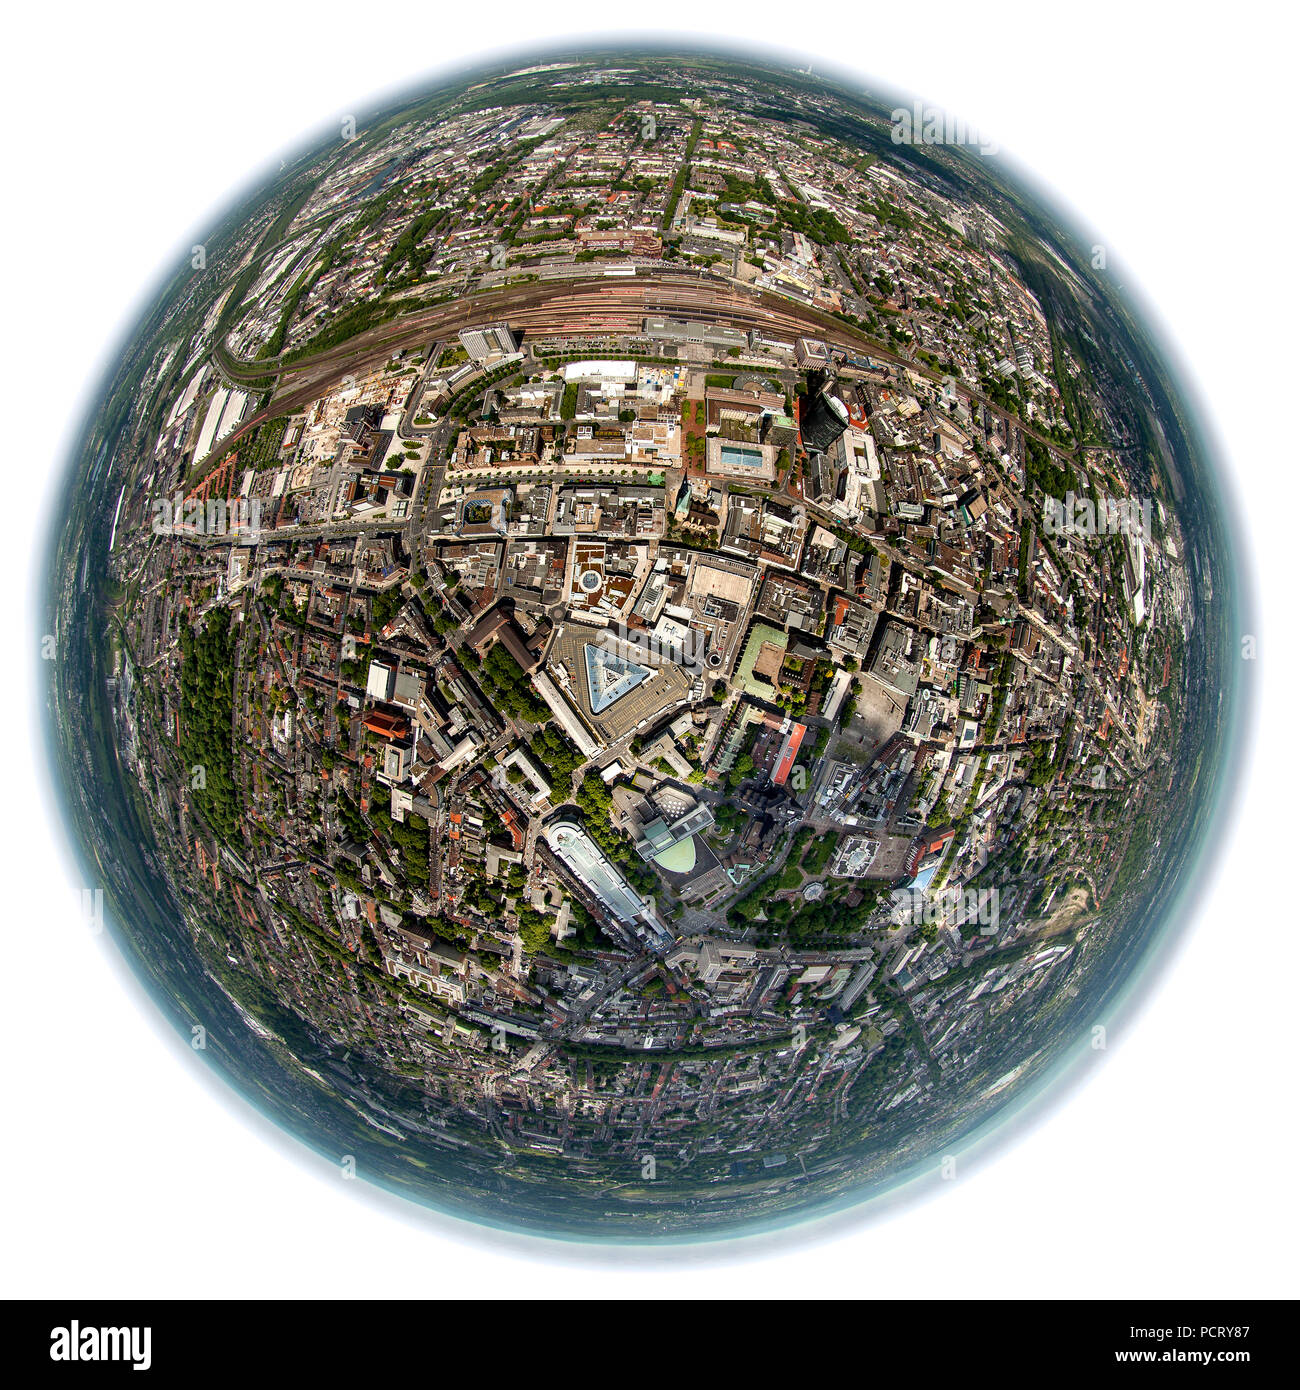 Aerial view, fisheye lens, Dortmund city centre with Thier-Galerie shopping centre in the middle, Dortmund, Ruhr area - Stock Image